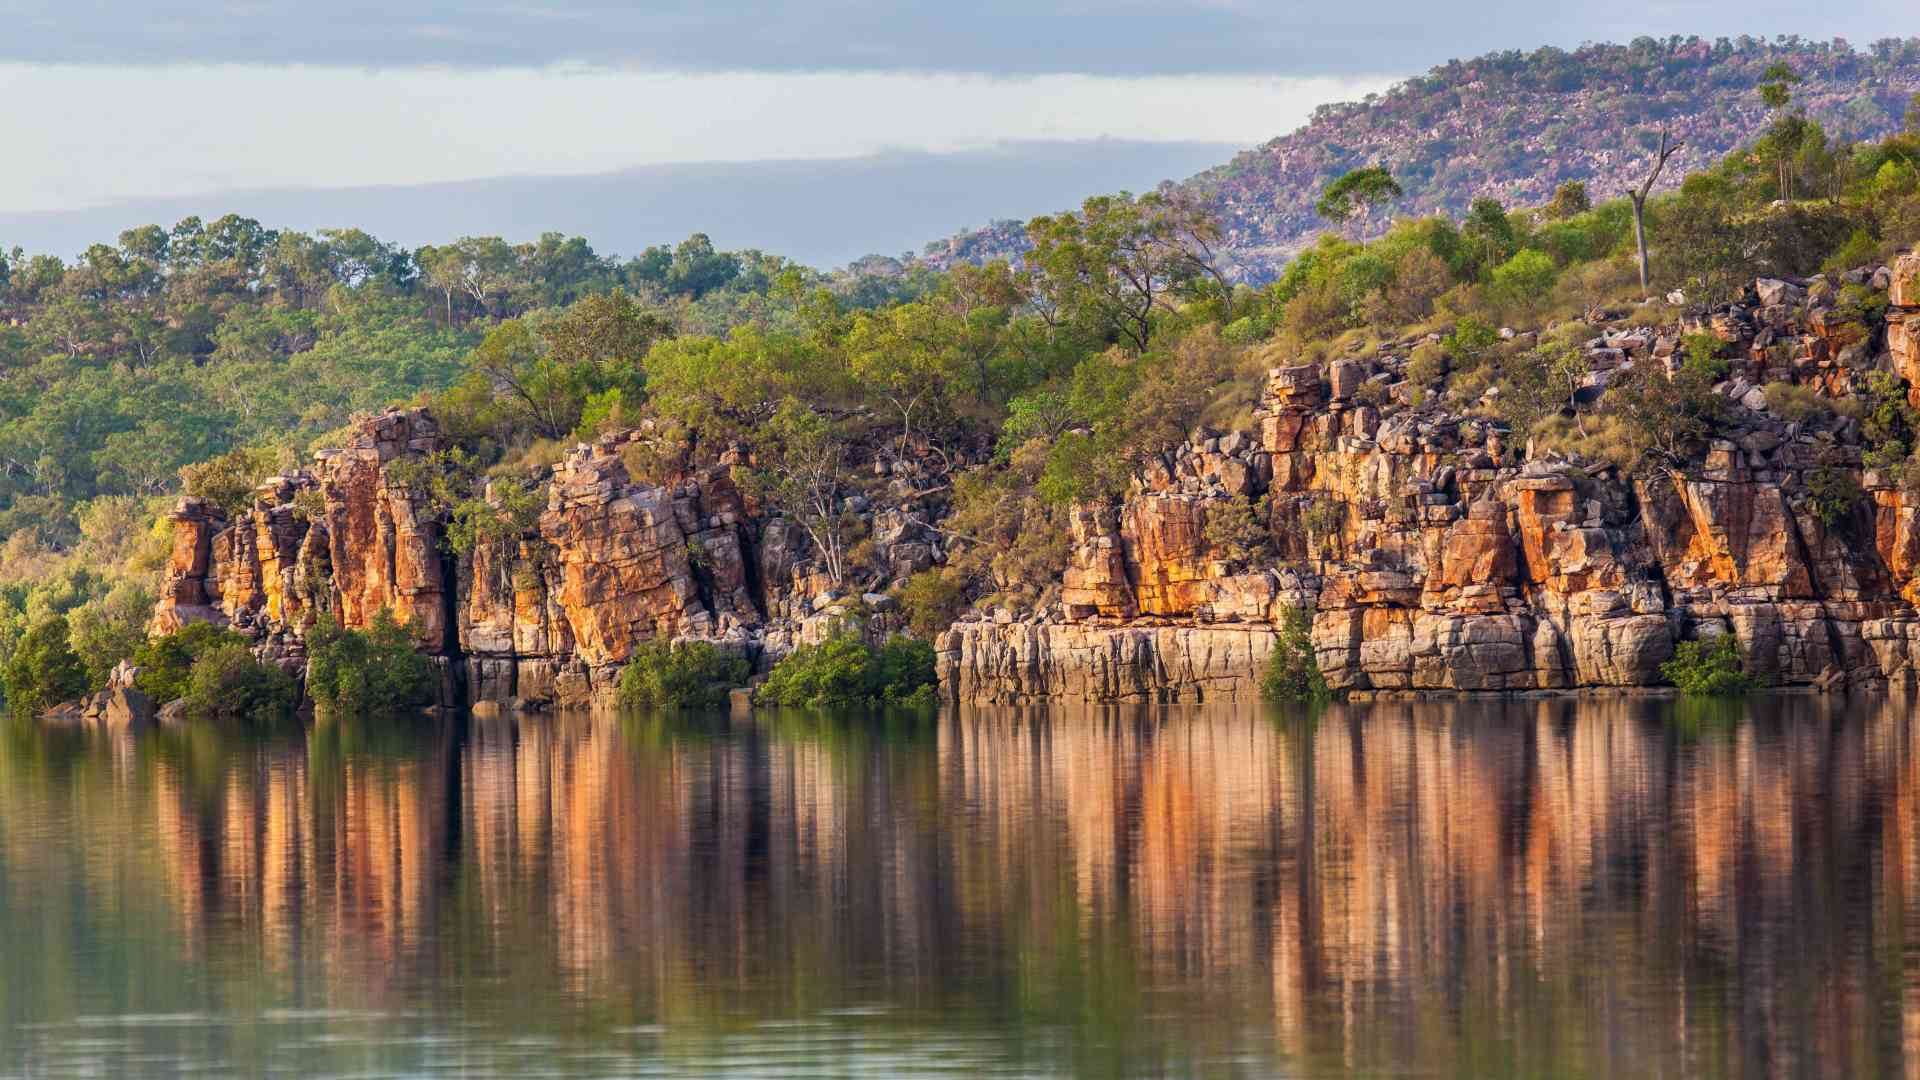 Kimberley water reflections, Western Australia by Quentin Chester (Aurora Expeditions)